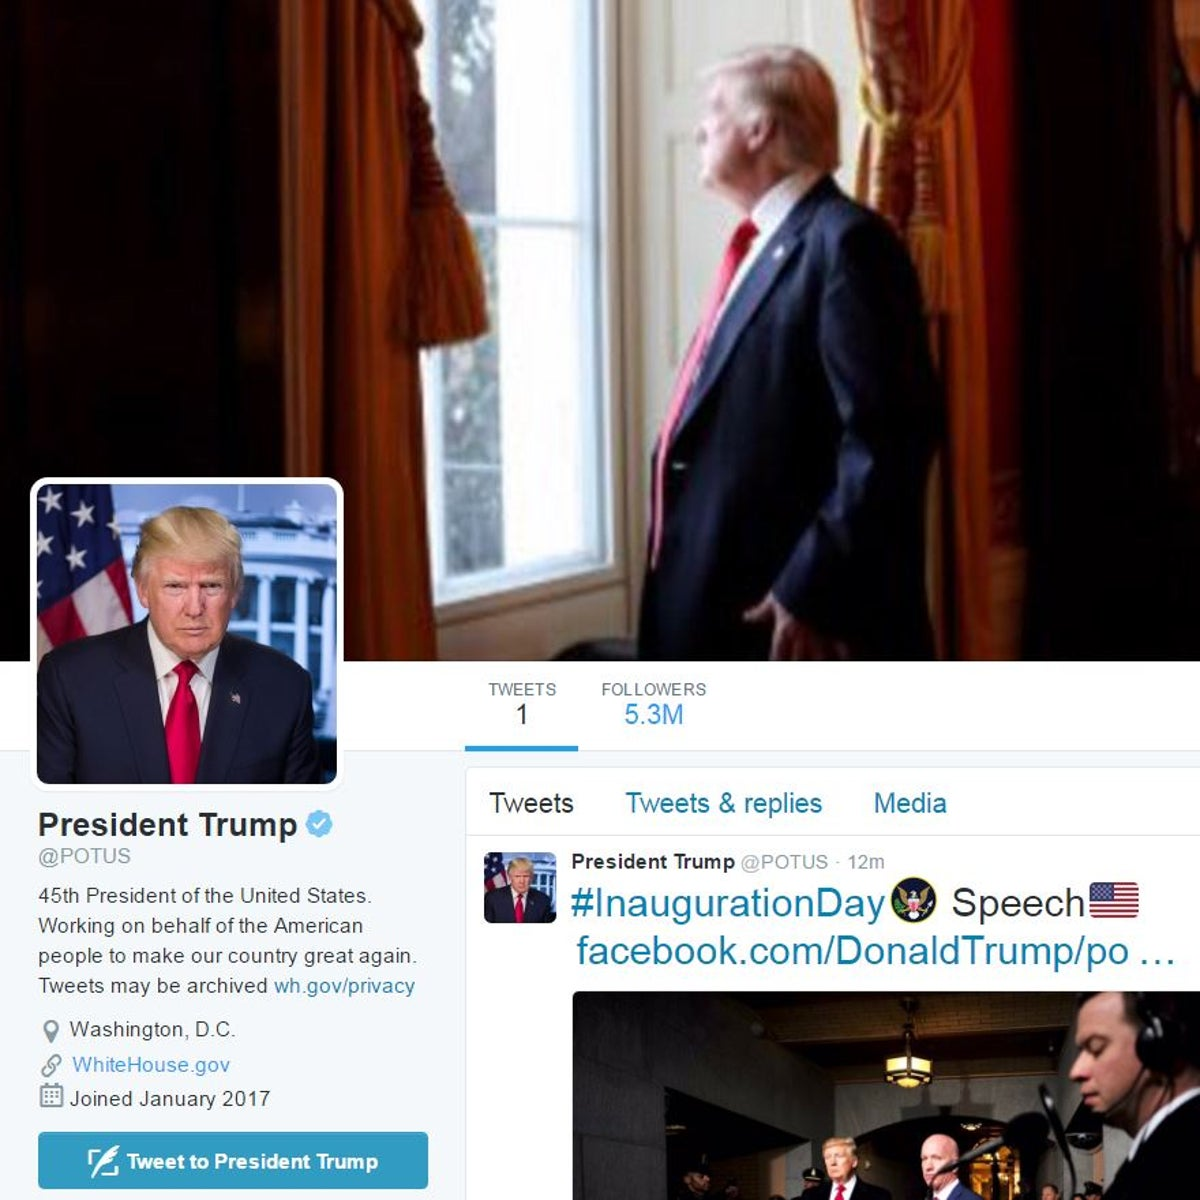 The @POTUS Twitter account, now in the hands of president Donald Trump.